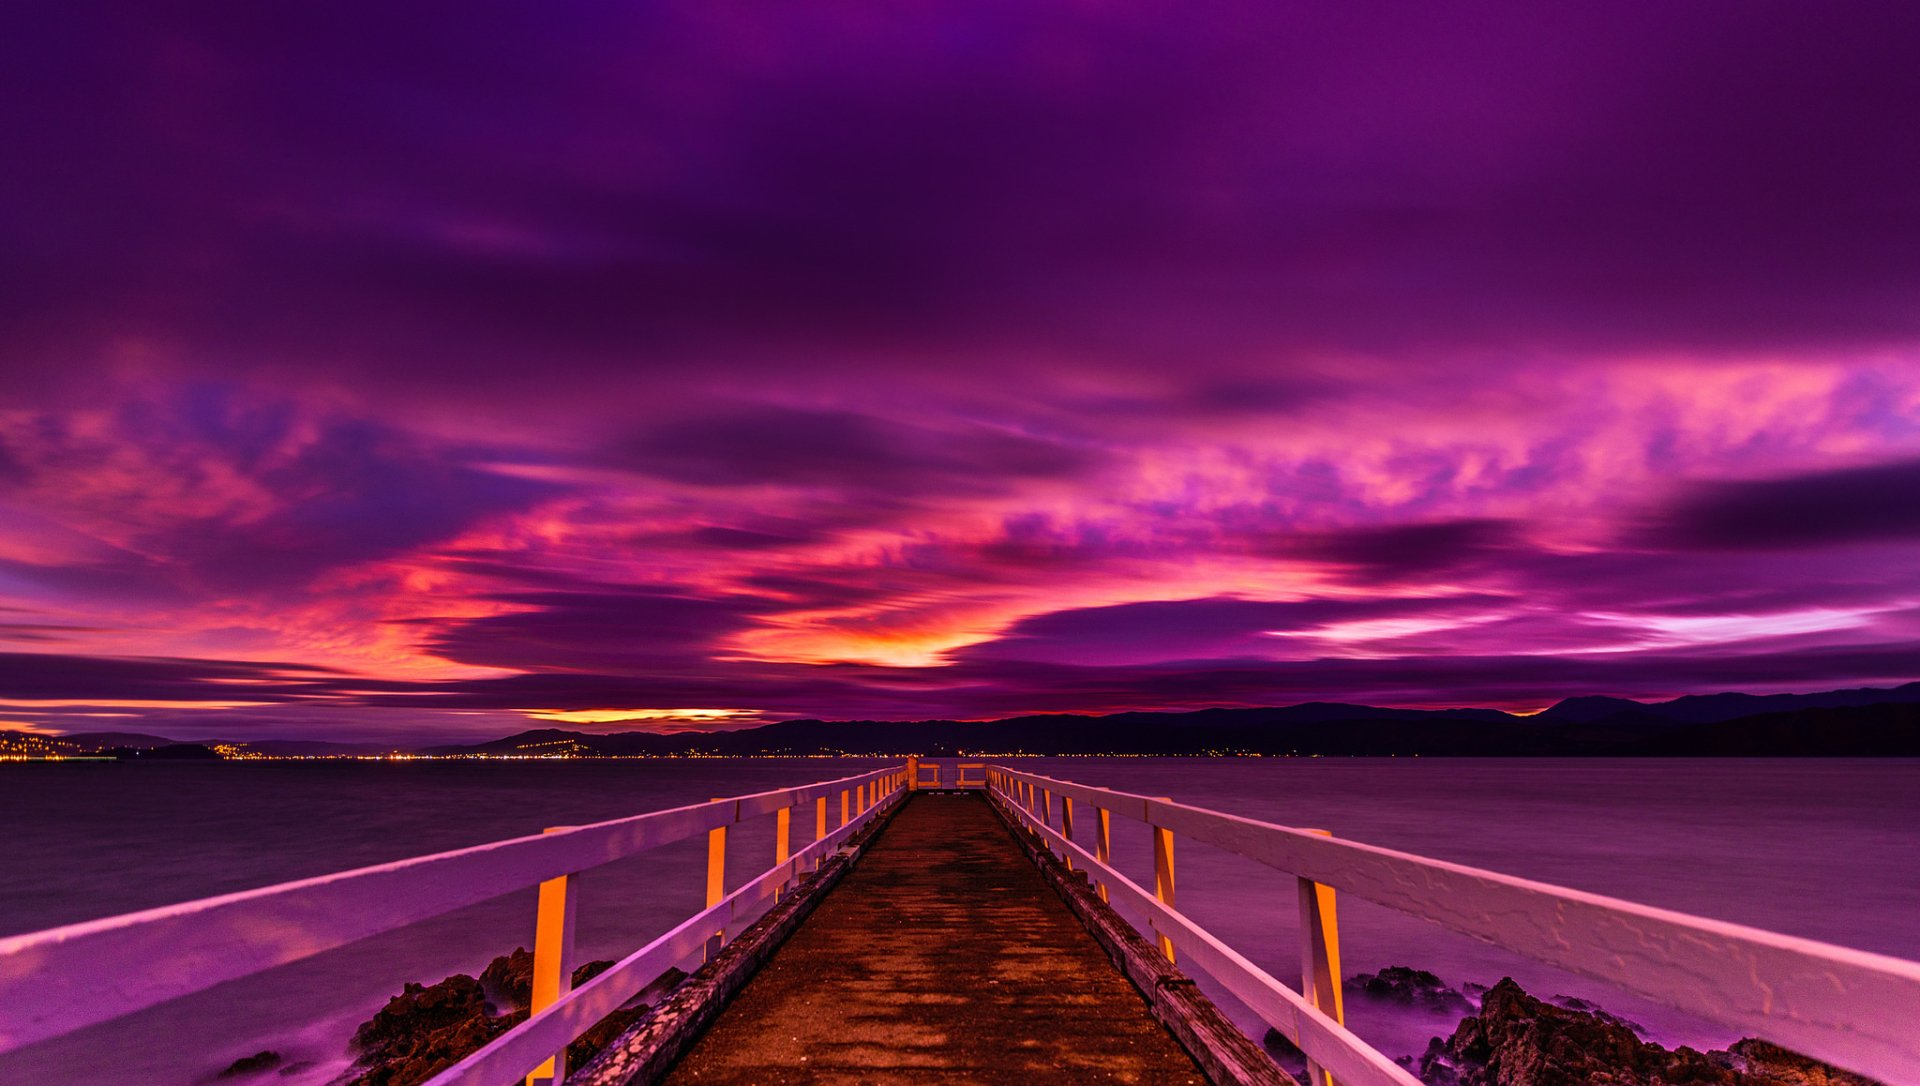 Purple Sunset Over Pier HD Wallpaper